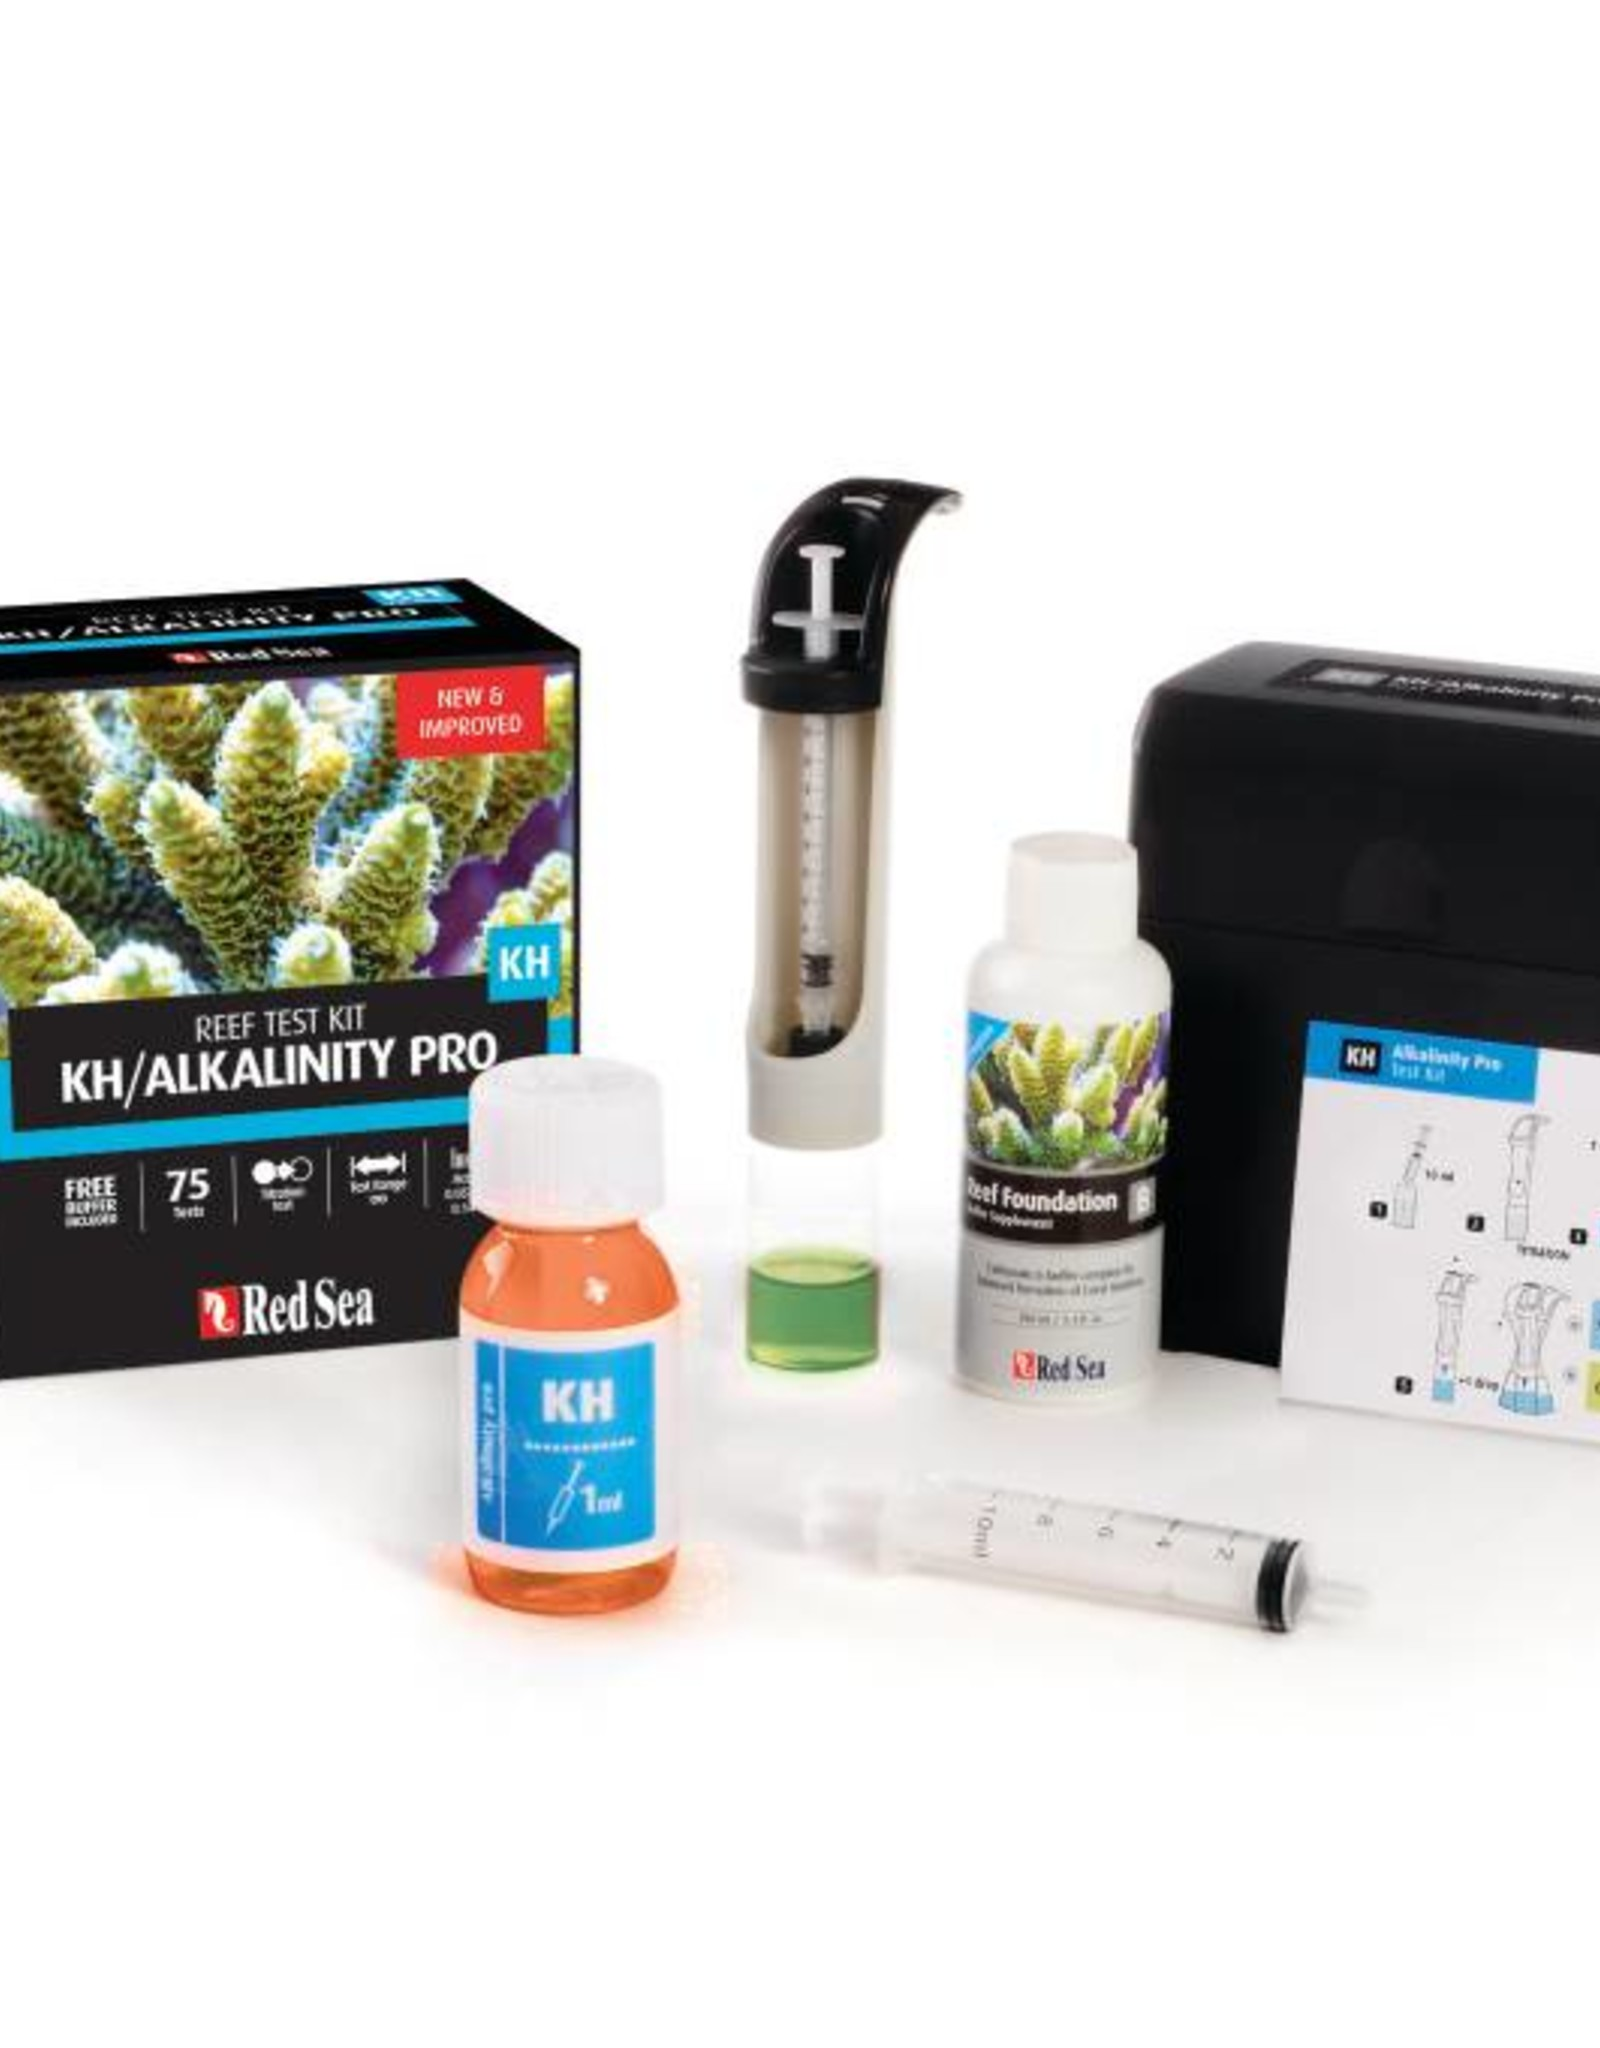 RED SEA Alkalinity Pro - High accuracy Titration Test Kit (75 tests)